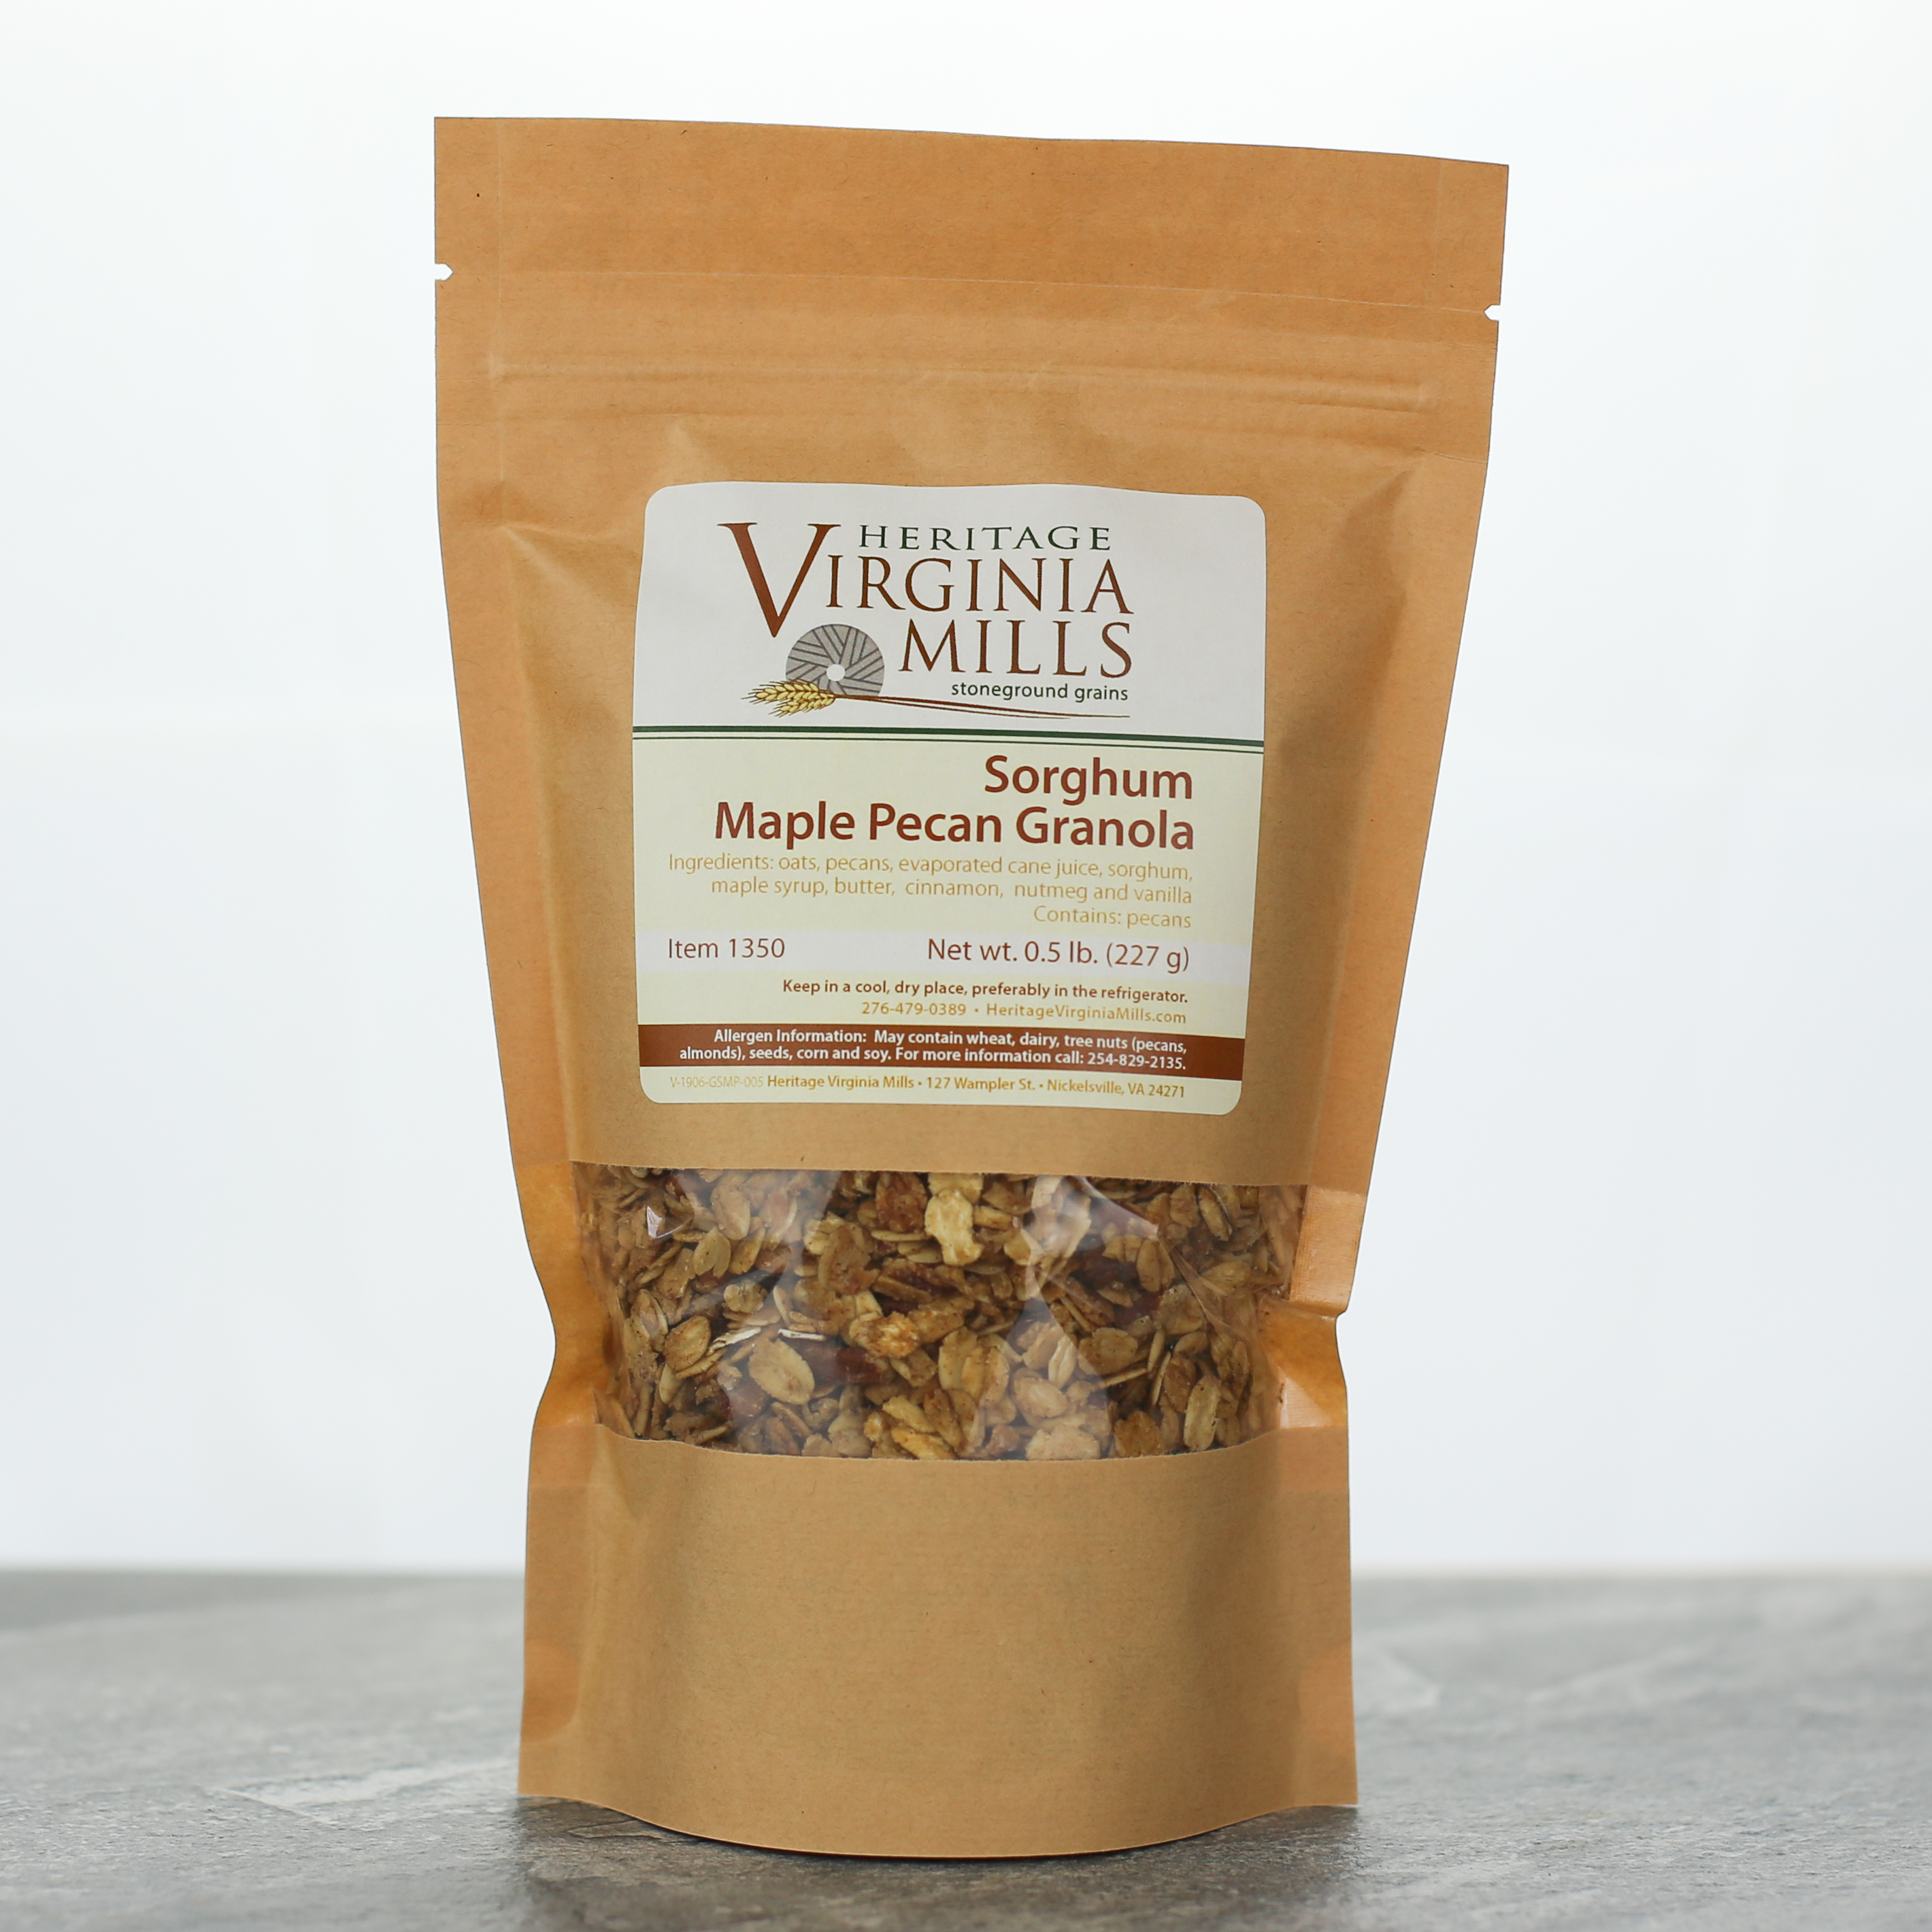 Sorghum Maple Pecan Granola